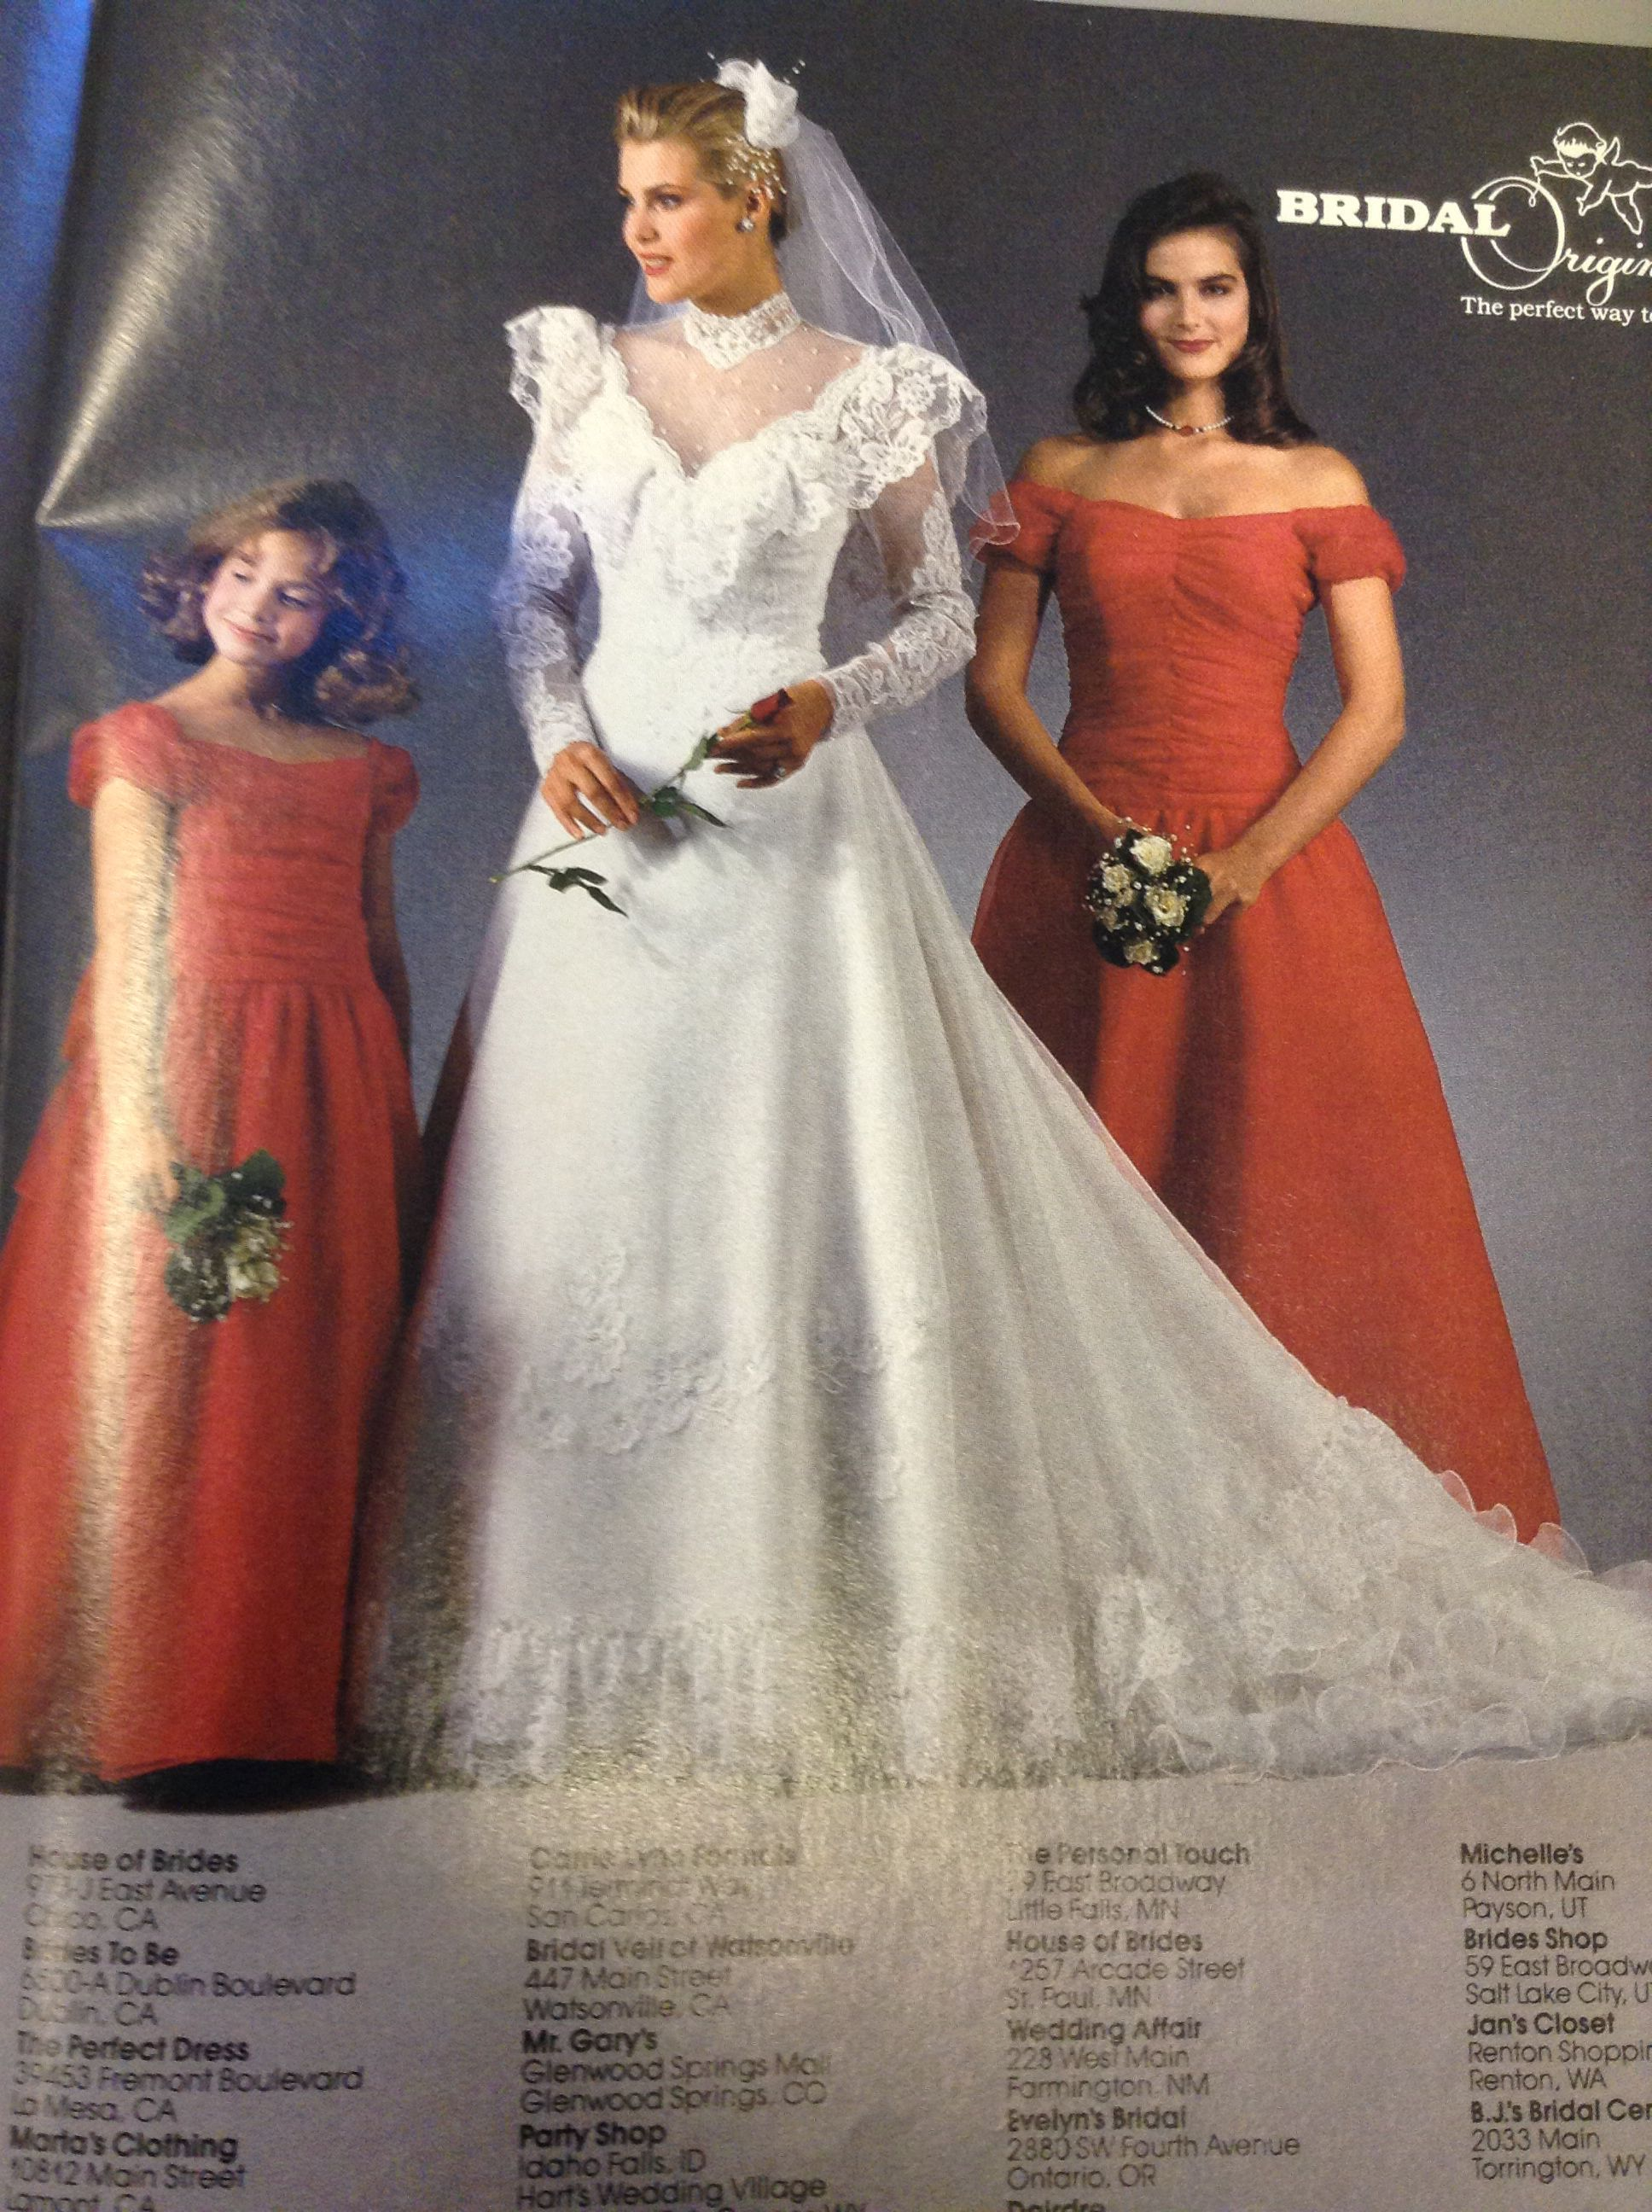 1987 Brides Magazine 1980s Wedding Dress Old Dresses With Veil